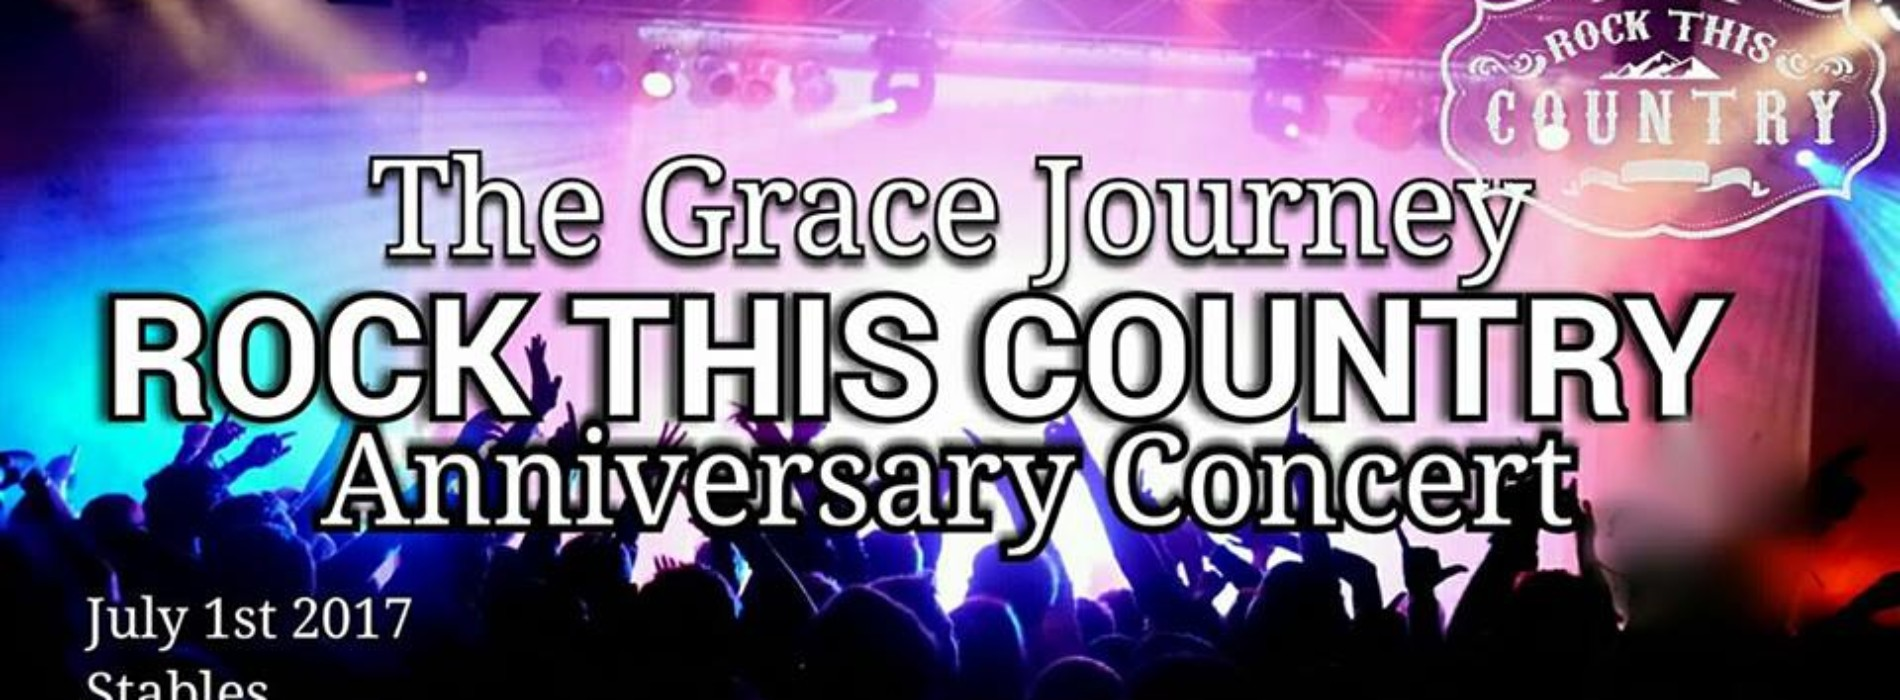 Rock This Country: The Grace Journey Concert